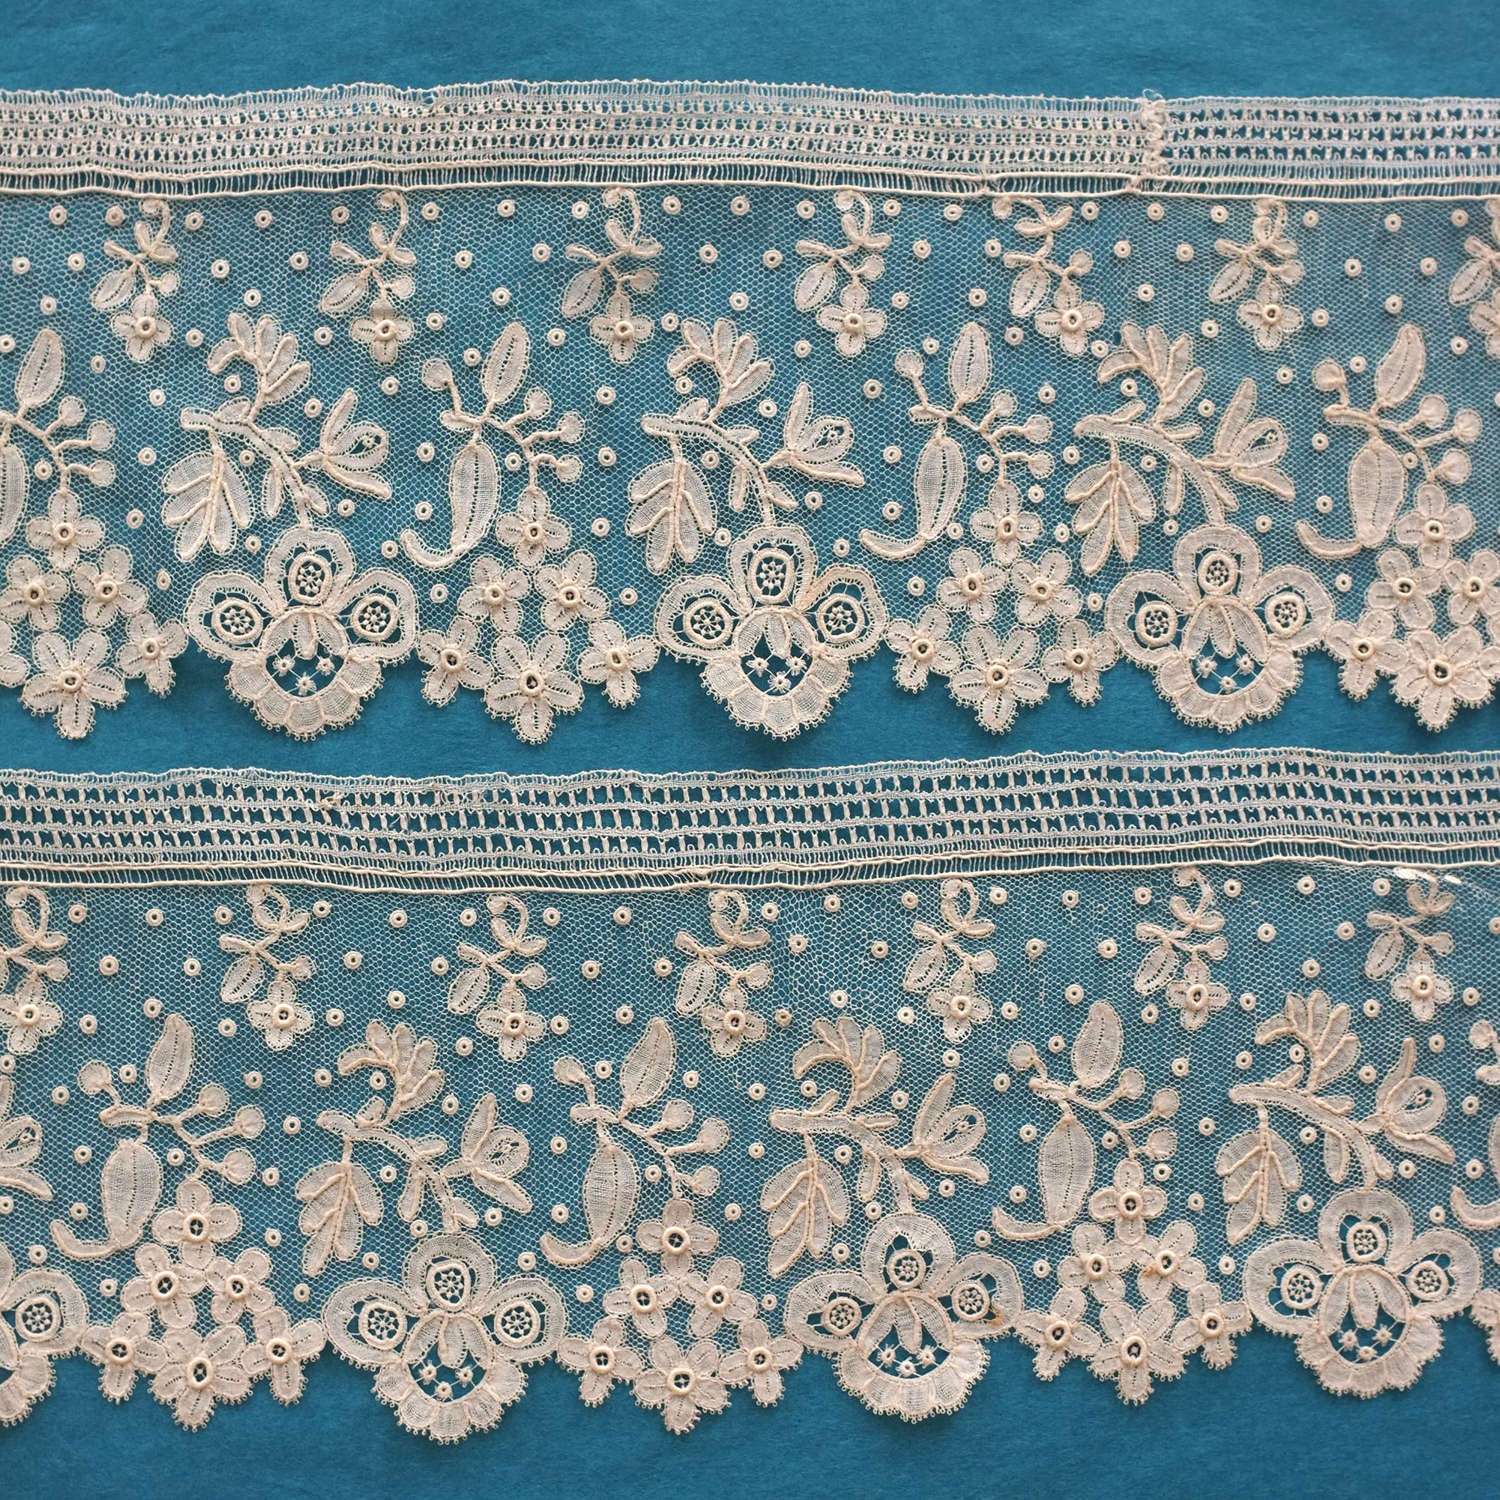 Antique Point d'Angleterre Lace Border